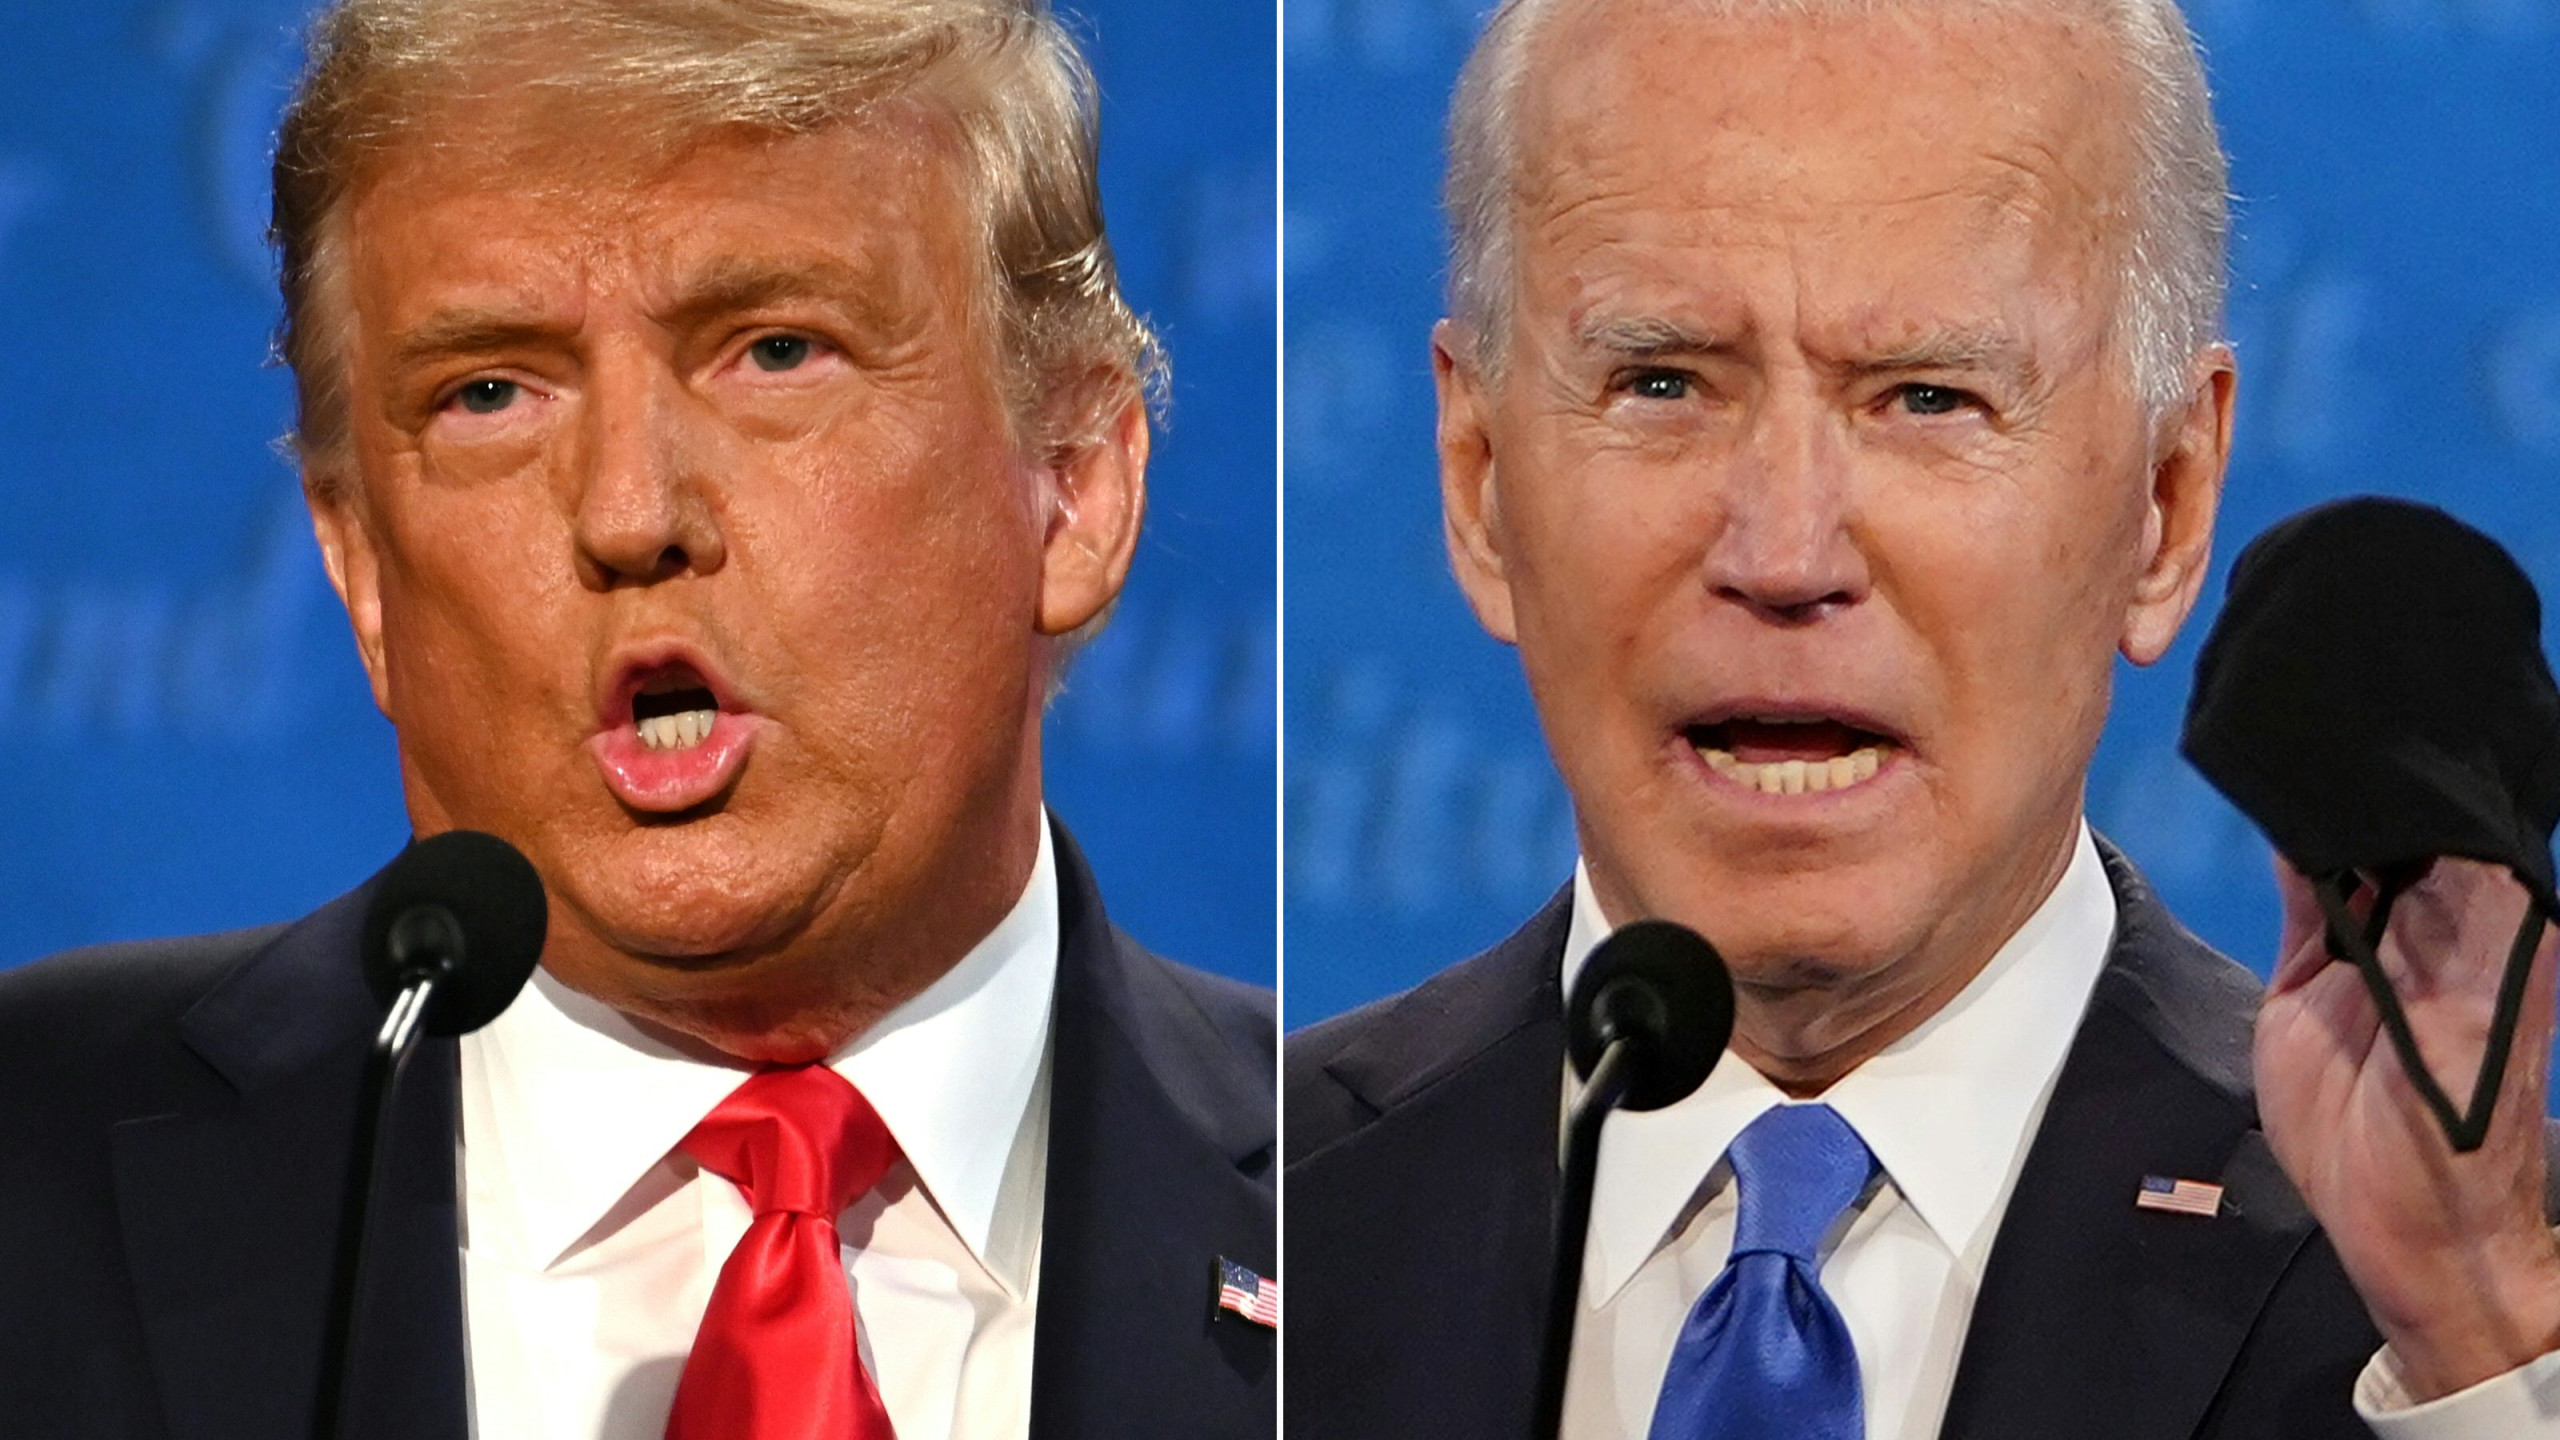 US Elections 2020: Biden leads with 238 electoral votes, Trump at 213